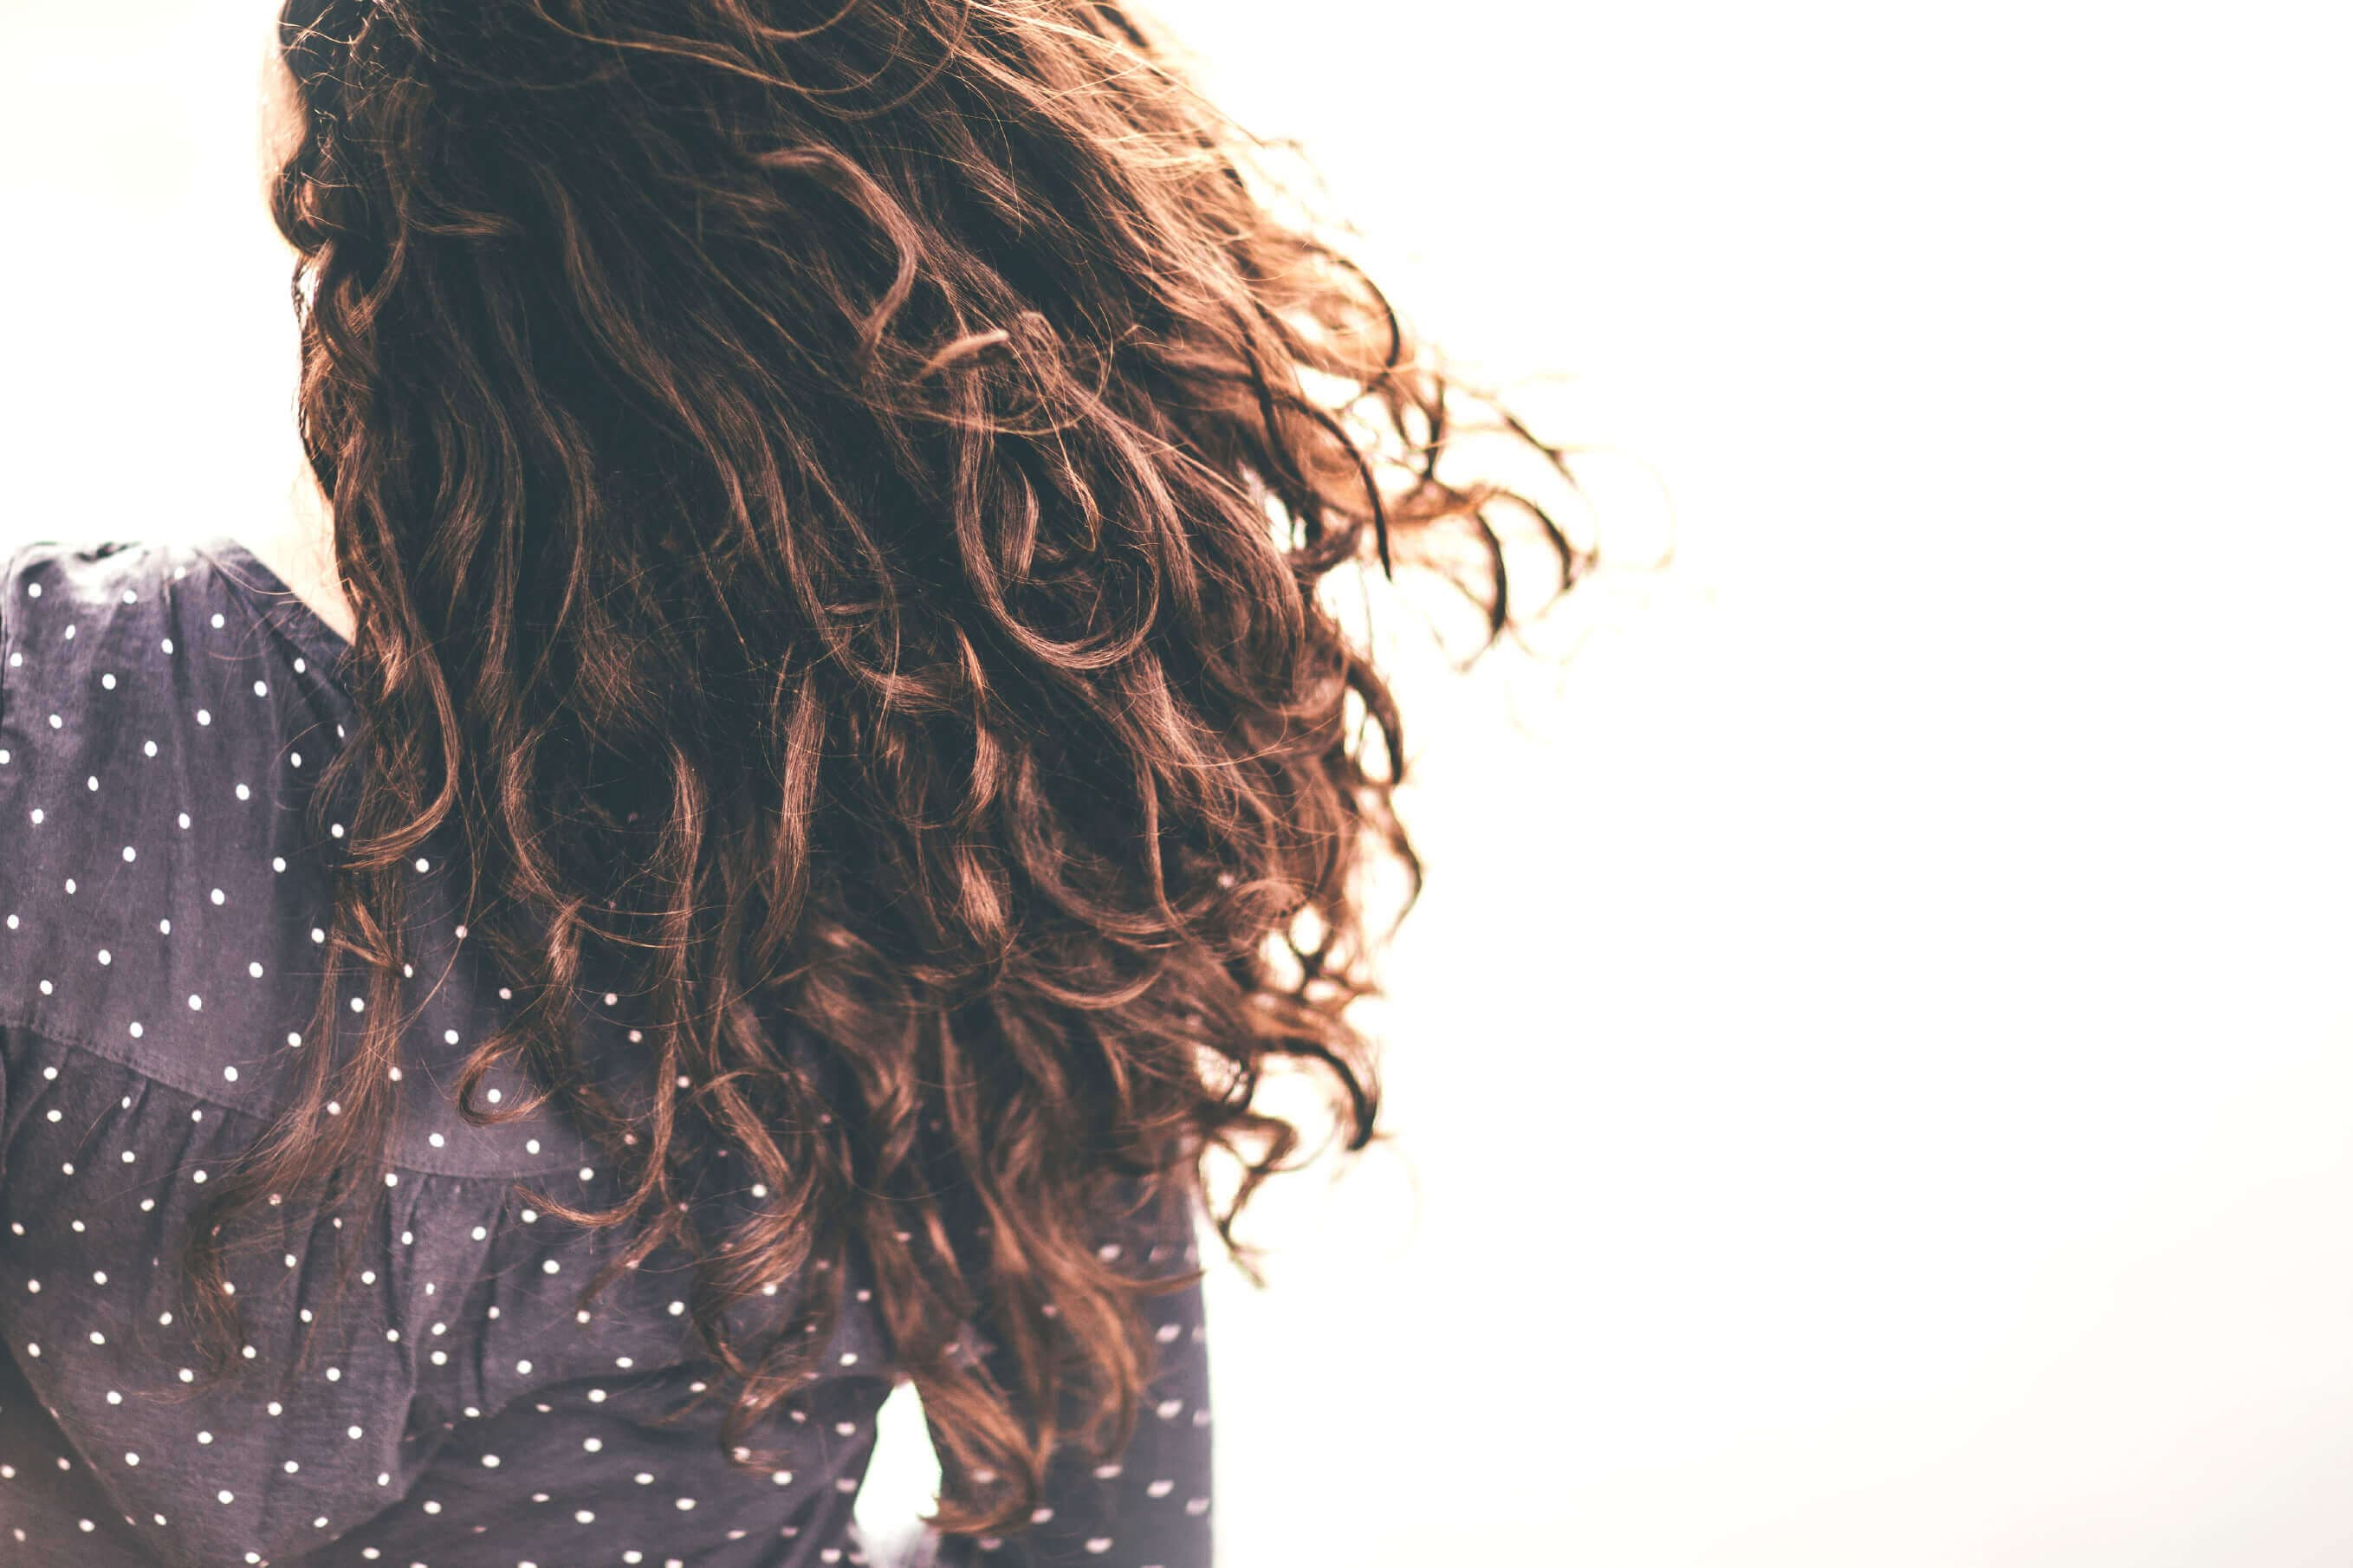 Brown haired woman with brown curly locks